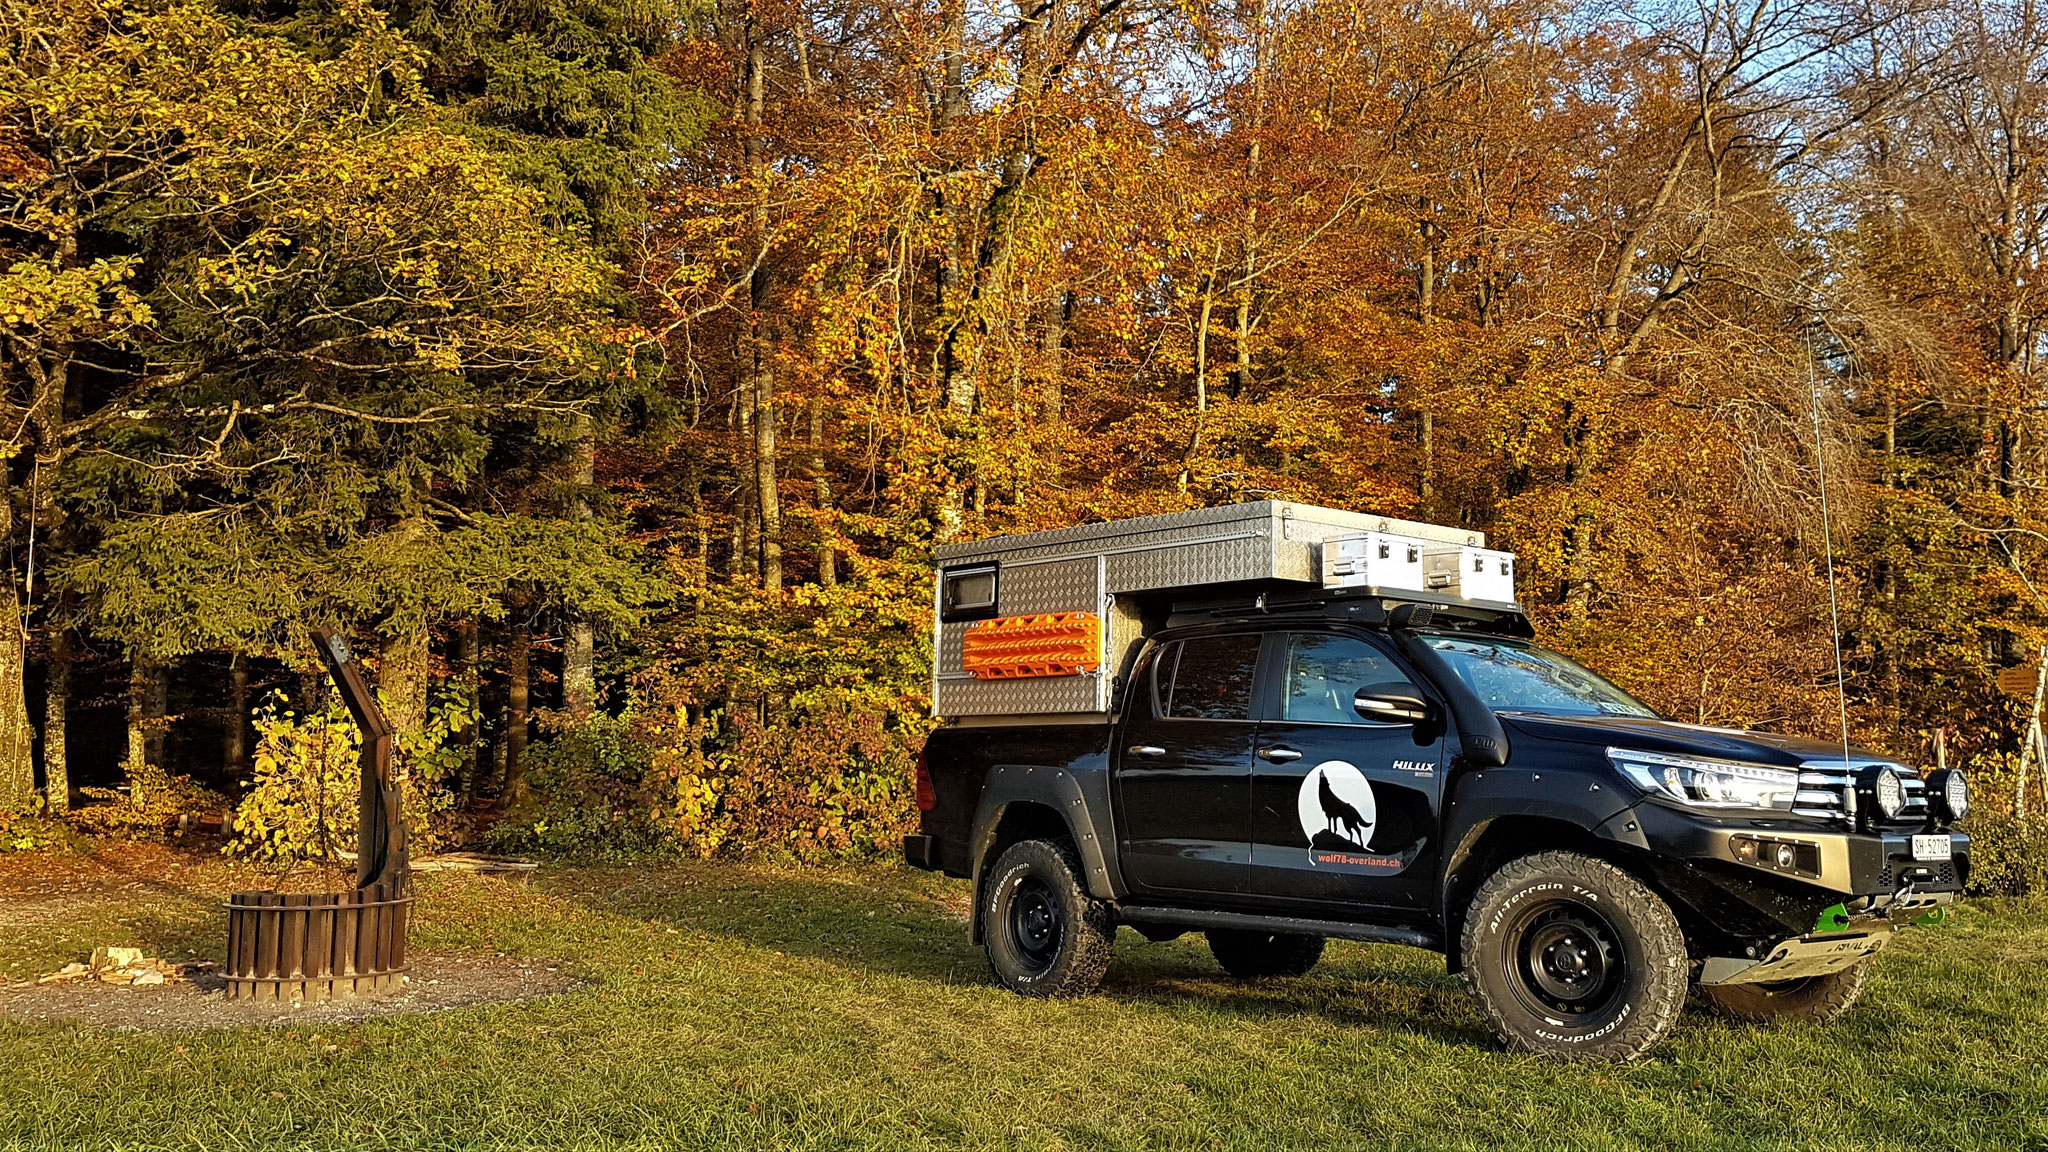 EXKAB Wohnkabine Toyota Hilux arctic trucks At33 At35 traveloverland truck Revo N80 #ProjektBlackwolf offroad Pick up camper Drive Your own Way AFN4x4Rival4x4 bfgoodrich t/a ko2 285/70R17 ltprtz DL0011-C Explore Without Limits switzerland Expedition